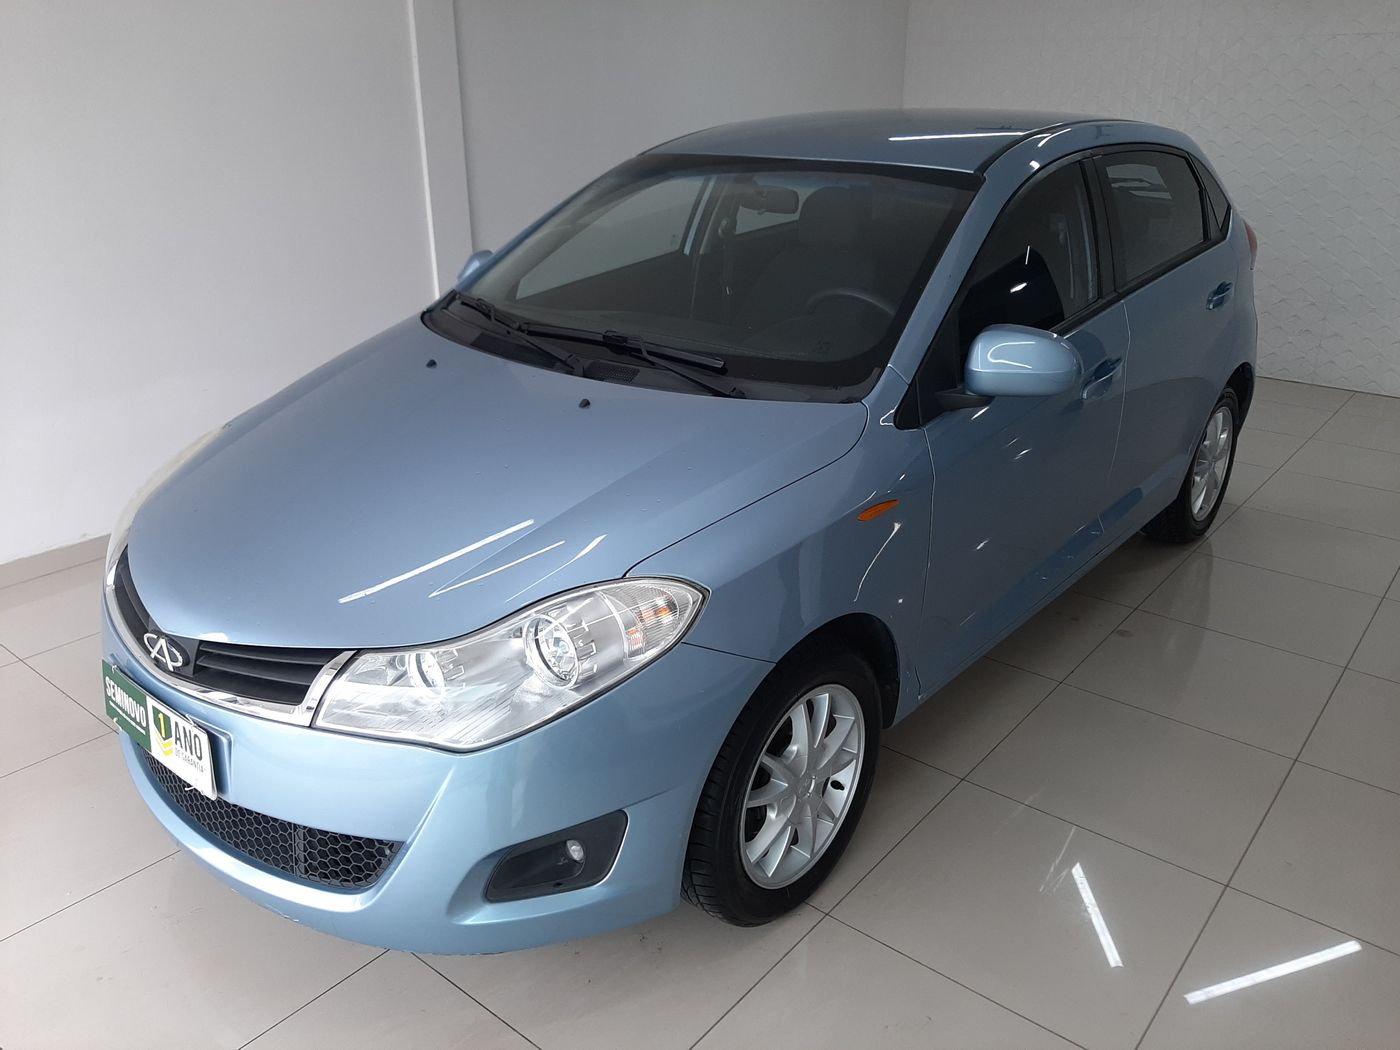 CHERY Celer Hatch 1.5 16V Flex 5p